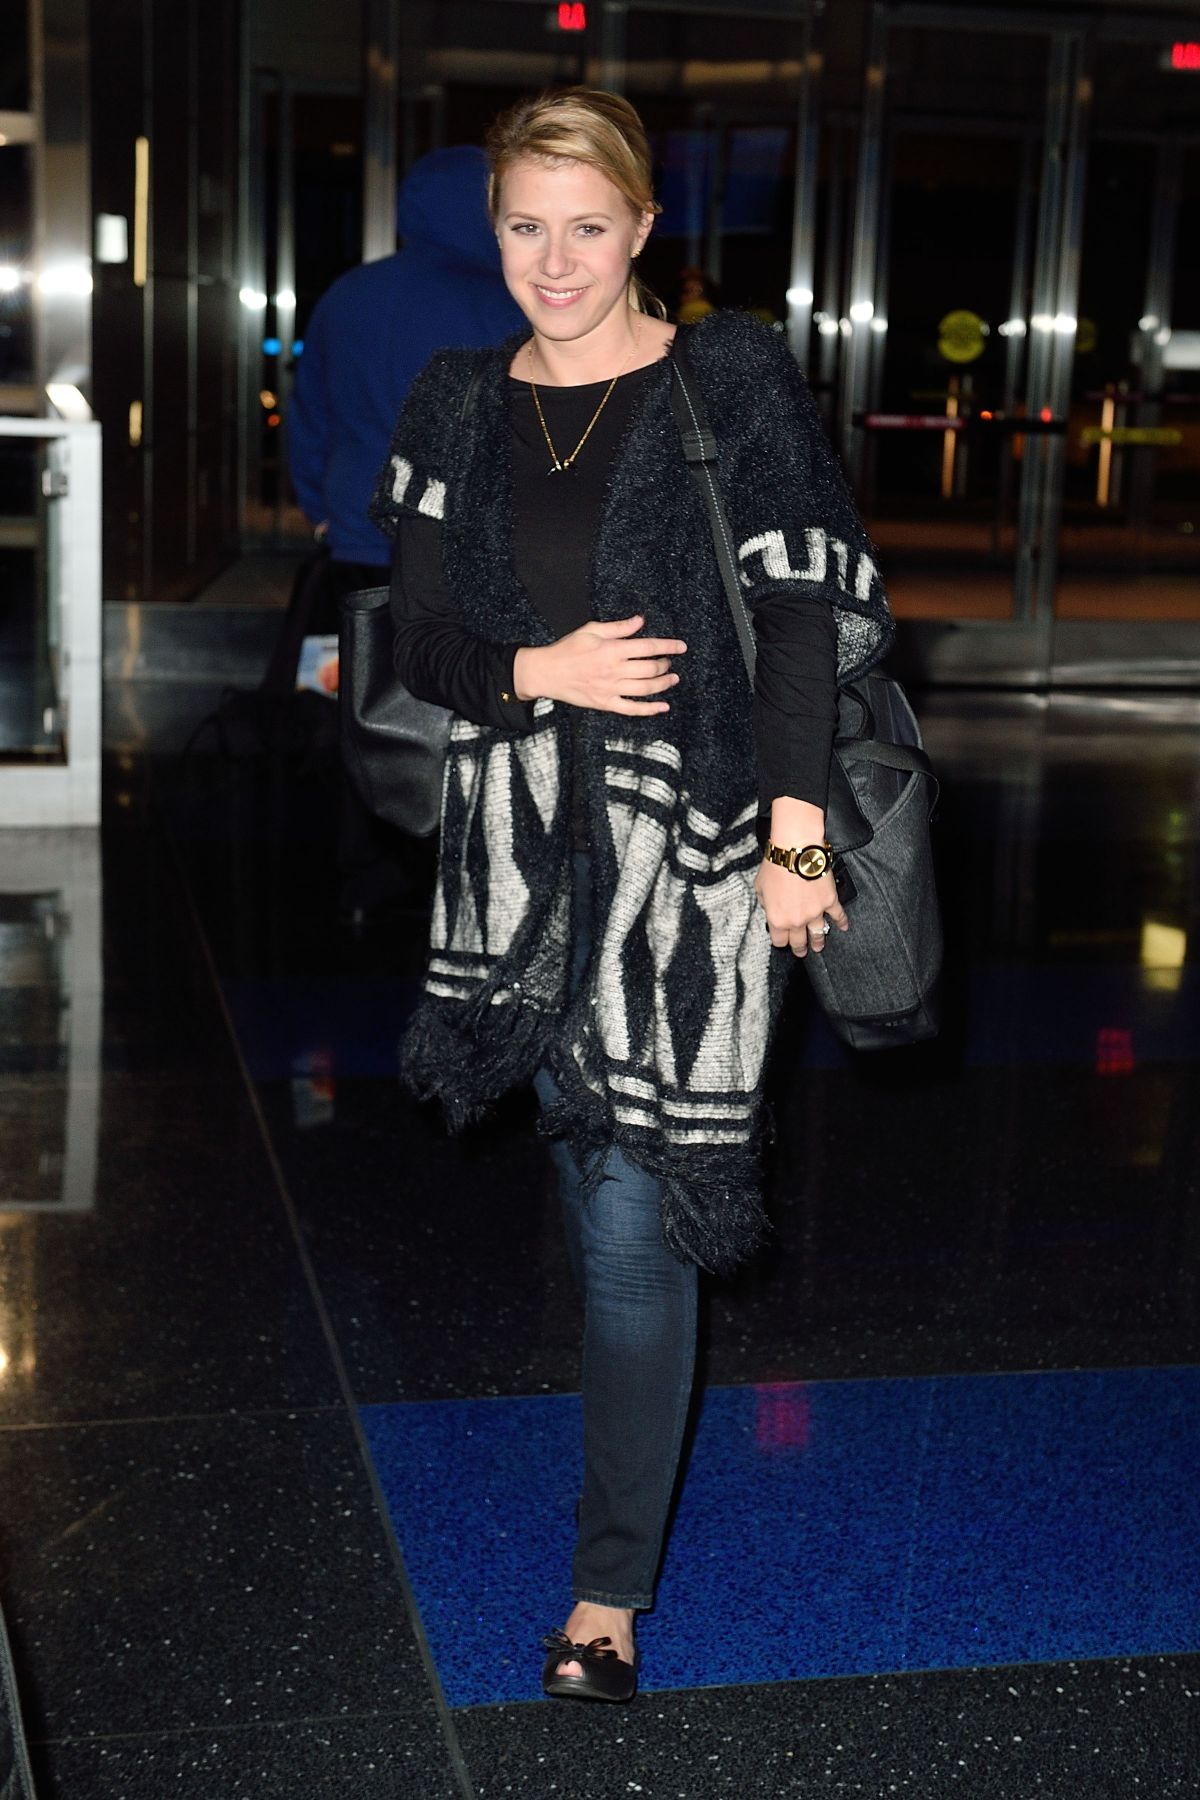 JODIE SWEETIN at JFK Airport in New York 10/29/2016